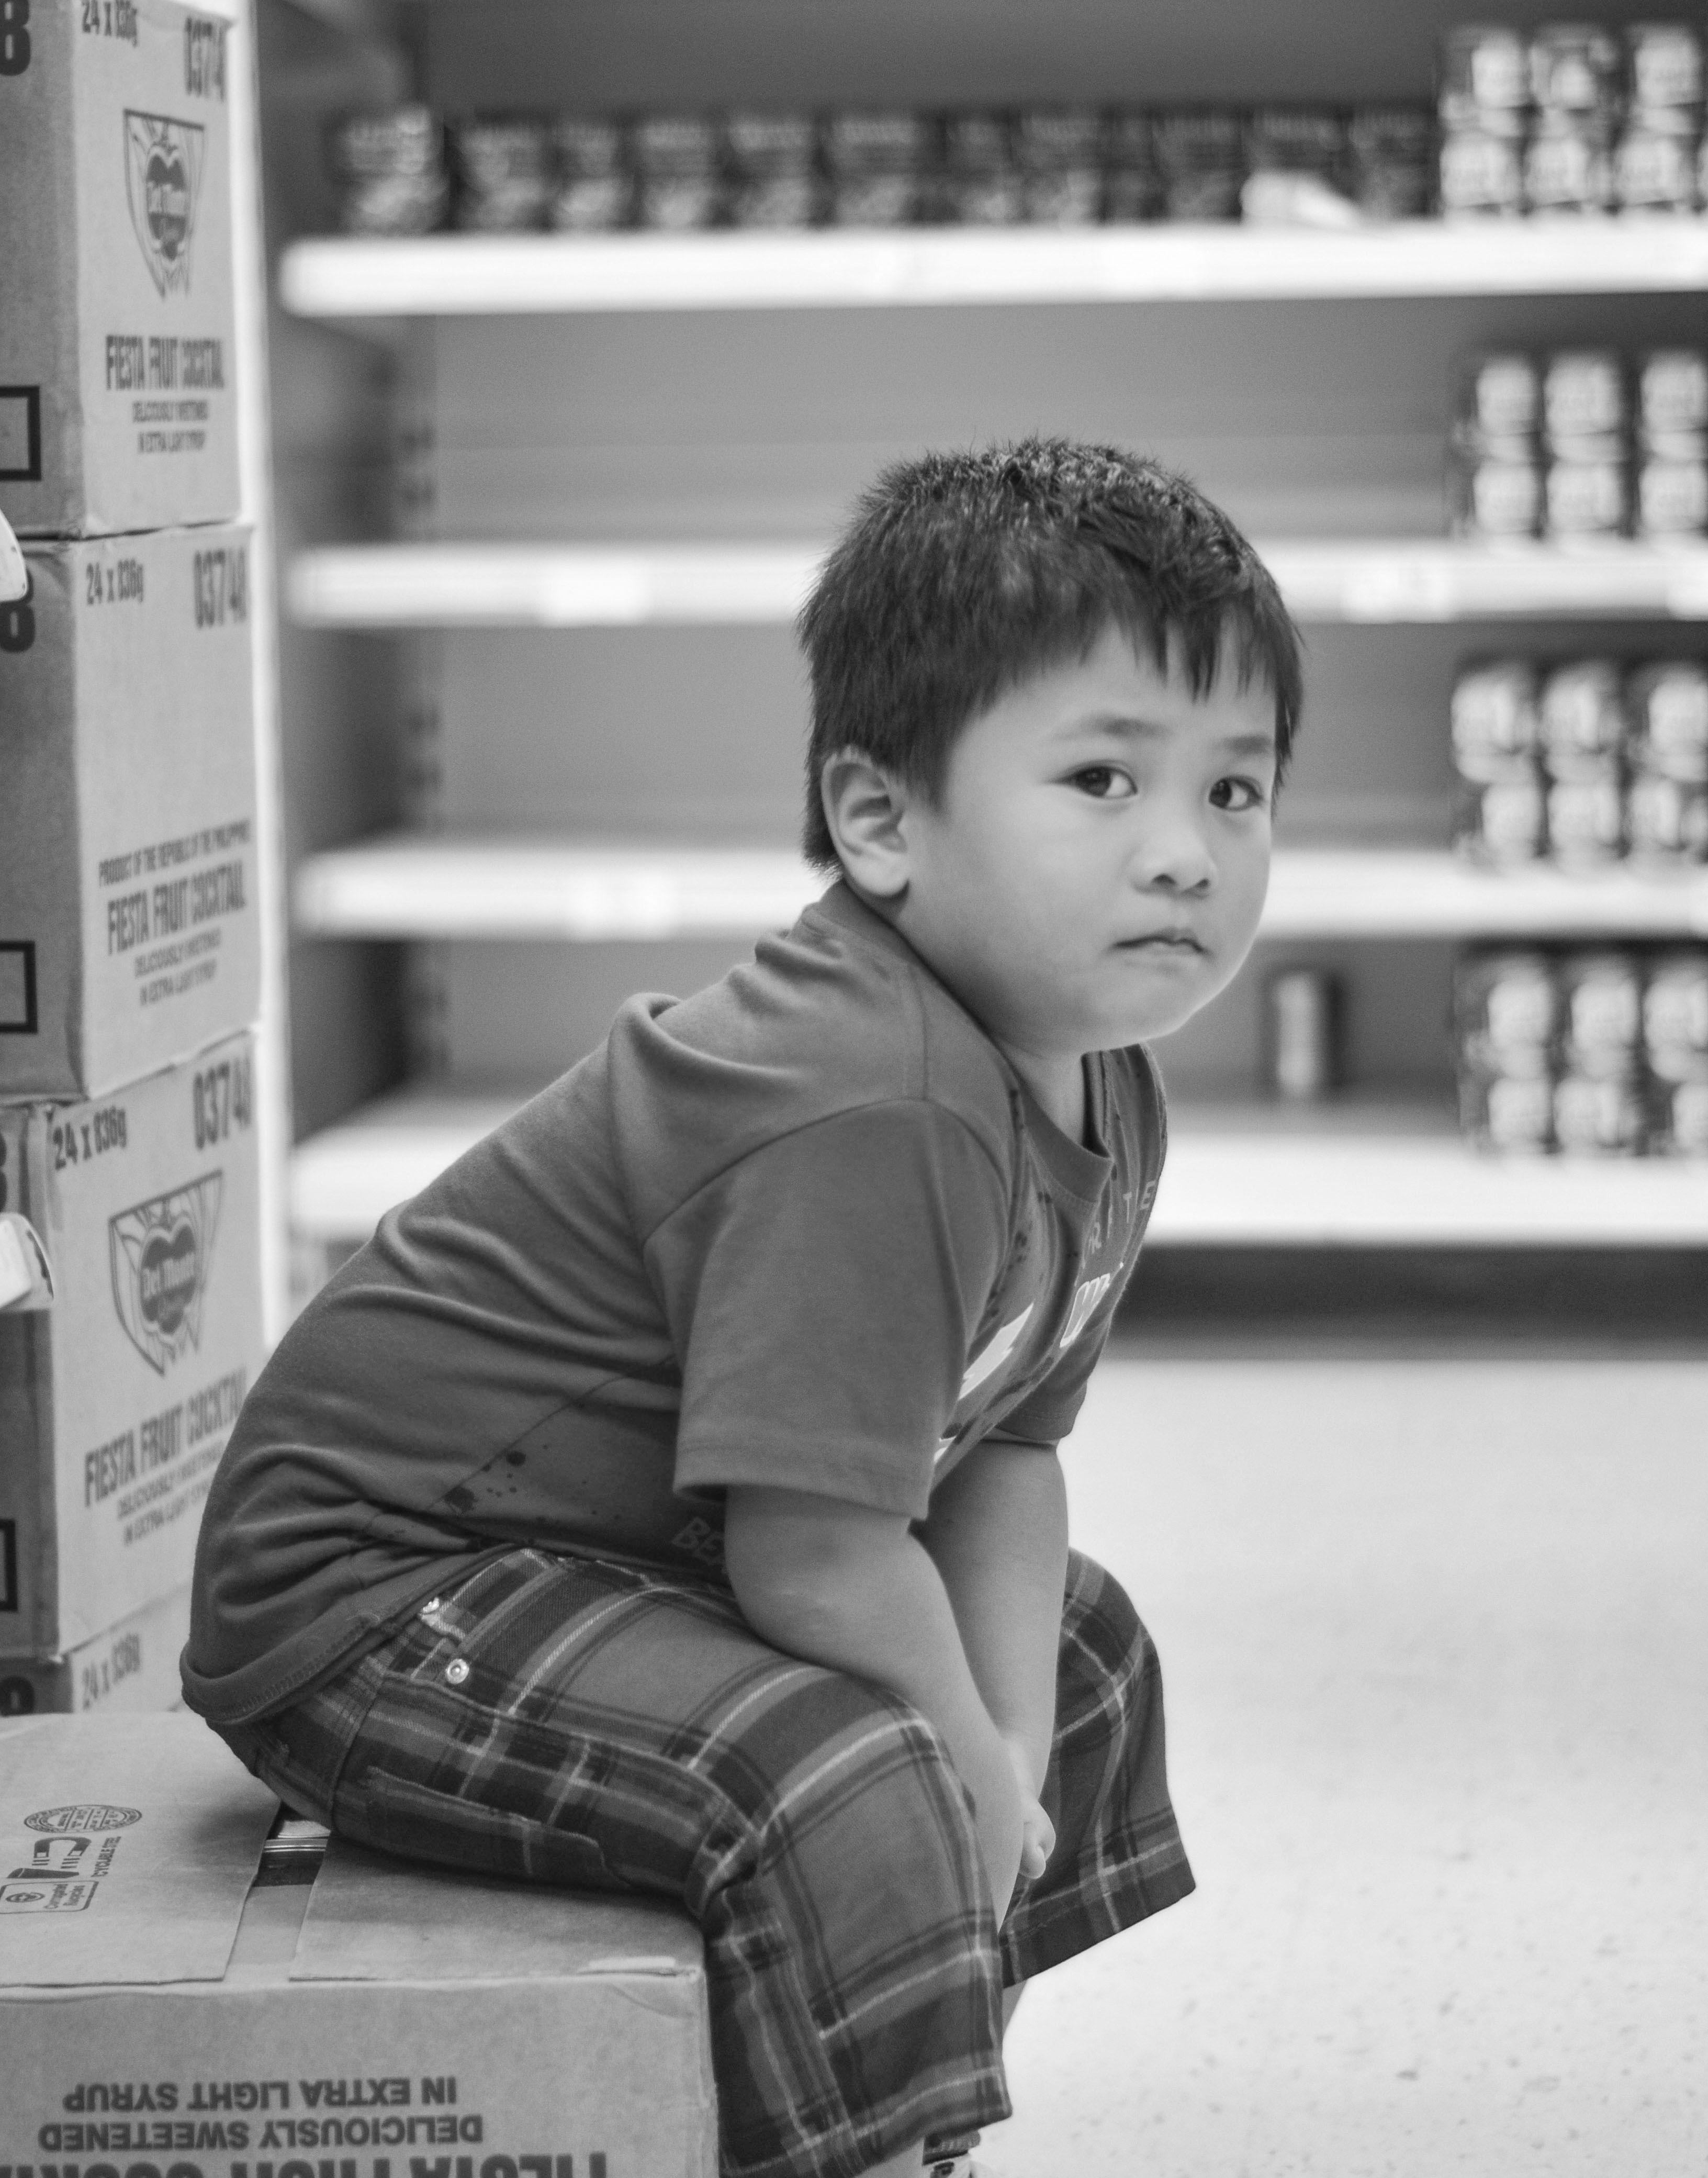 Rampant Food Insecurity Sparks Call for Federal Action